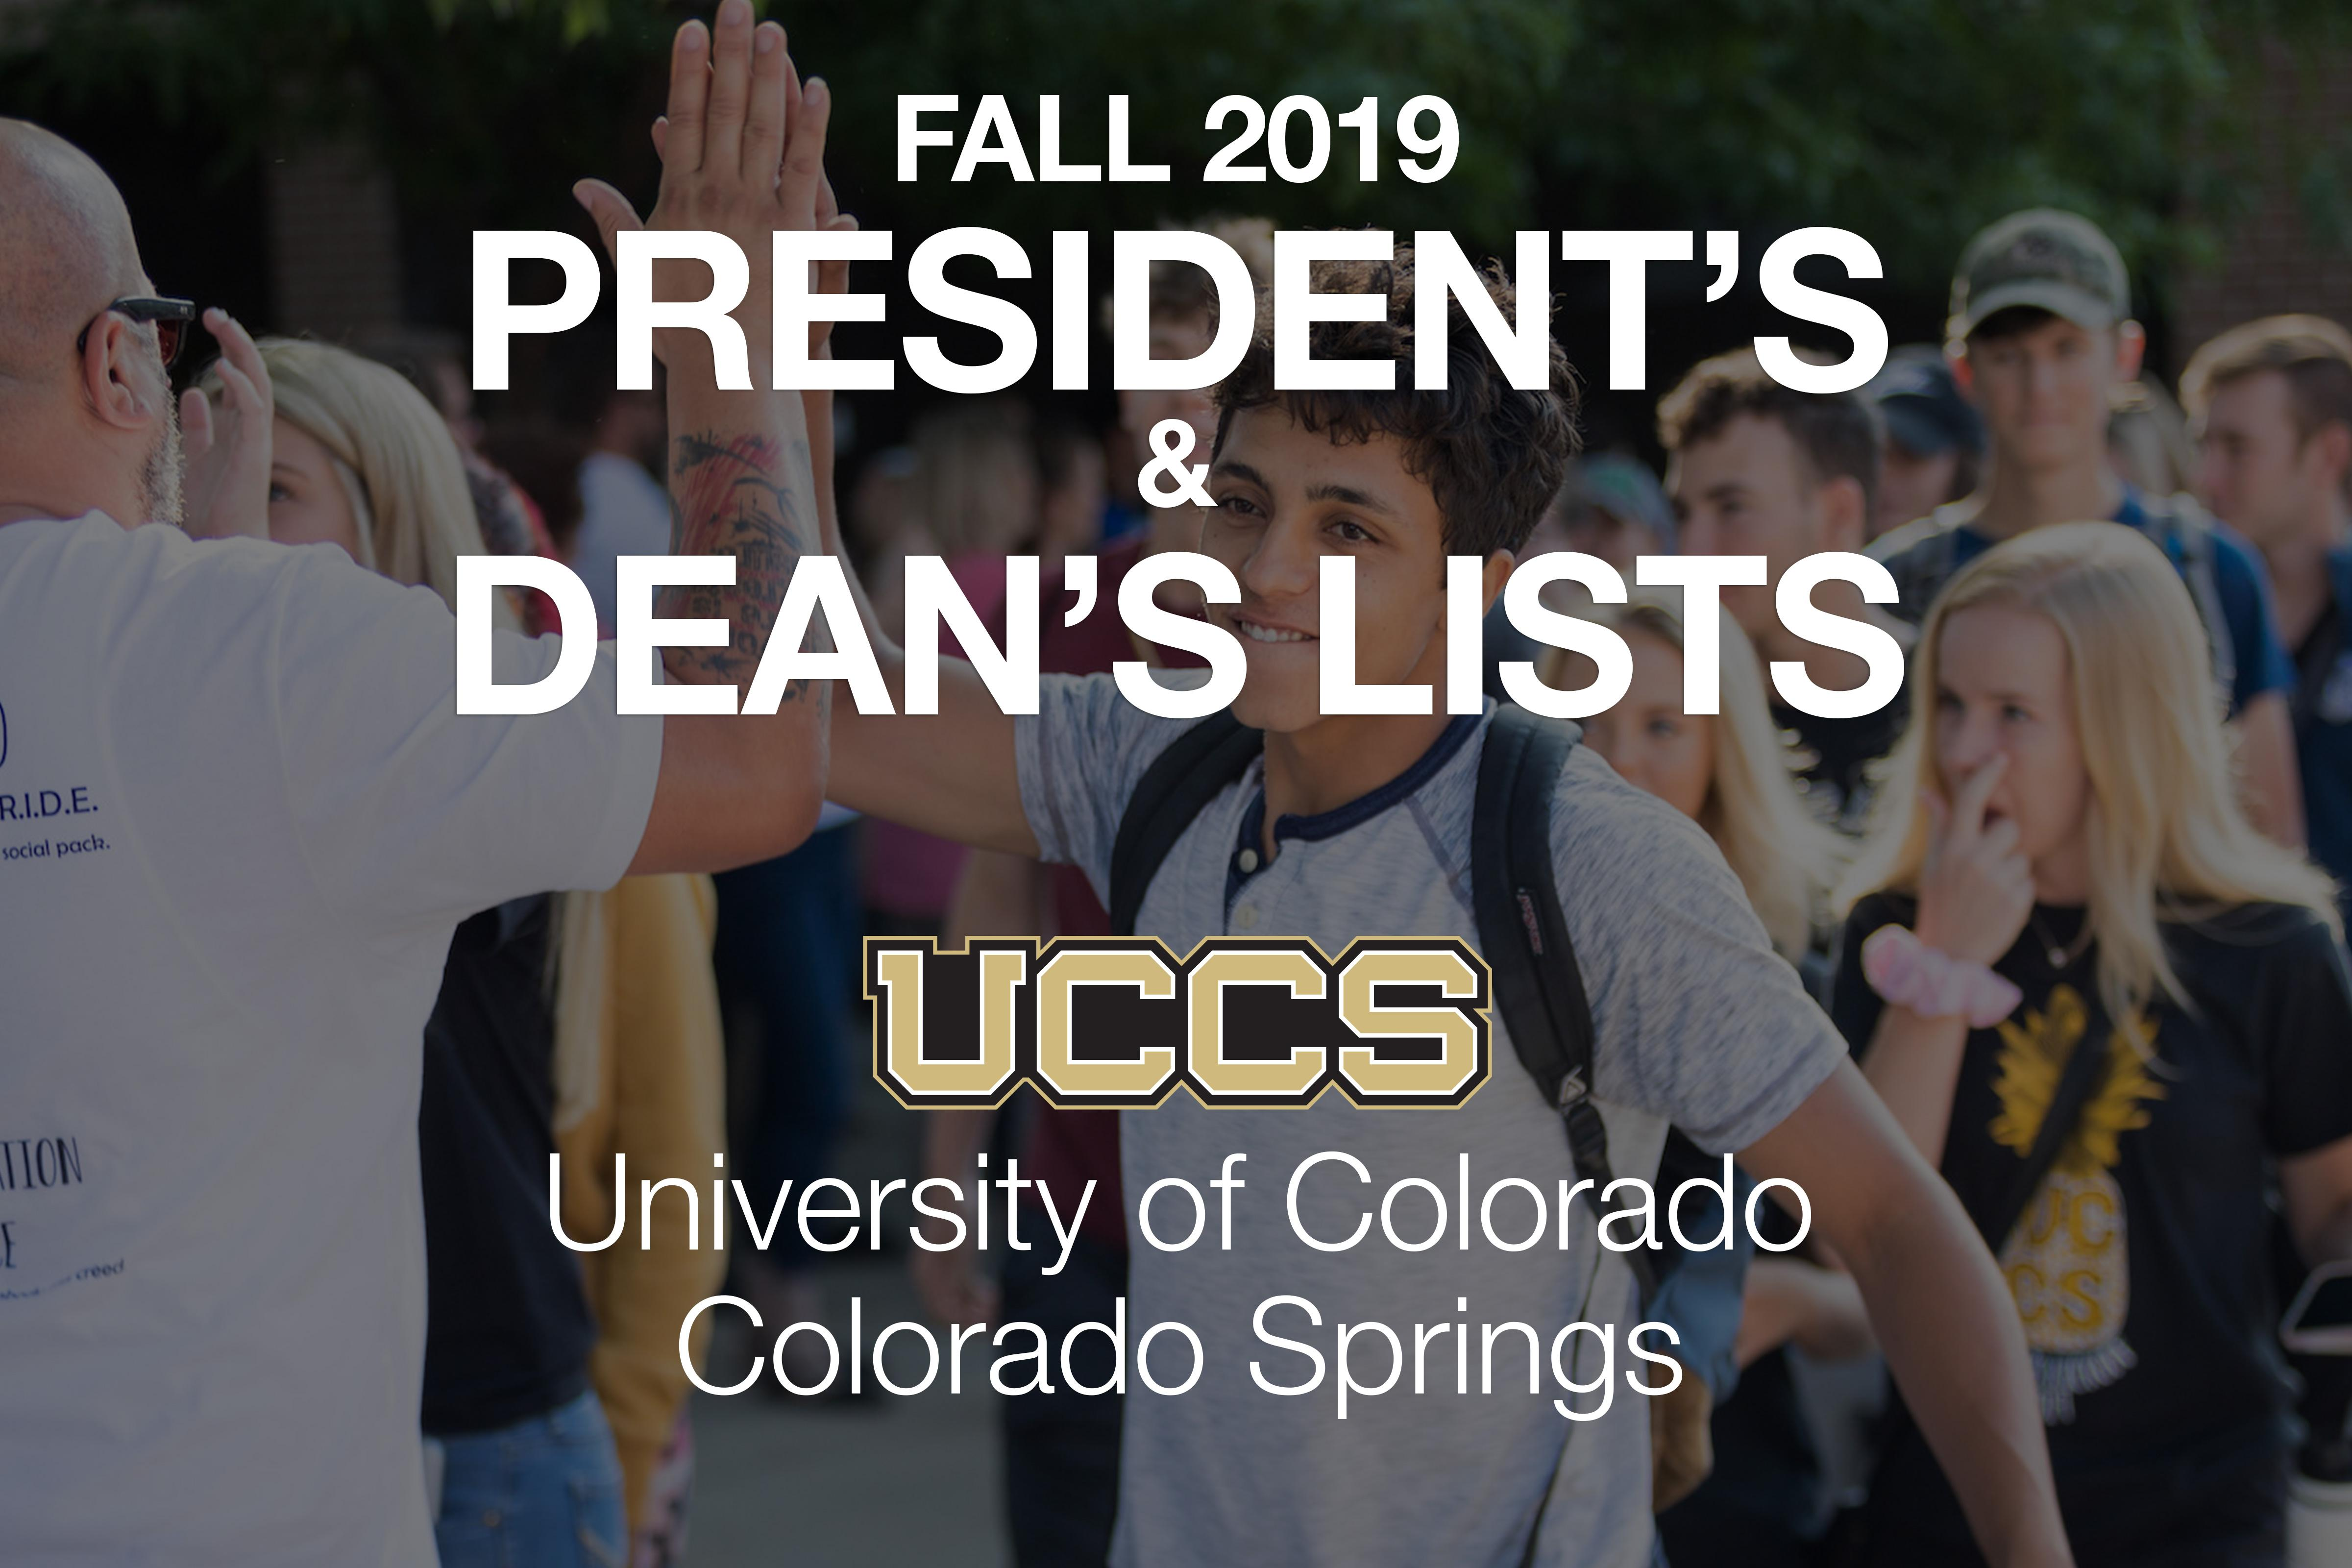 Fall 2019 President's and Dean's List graphic